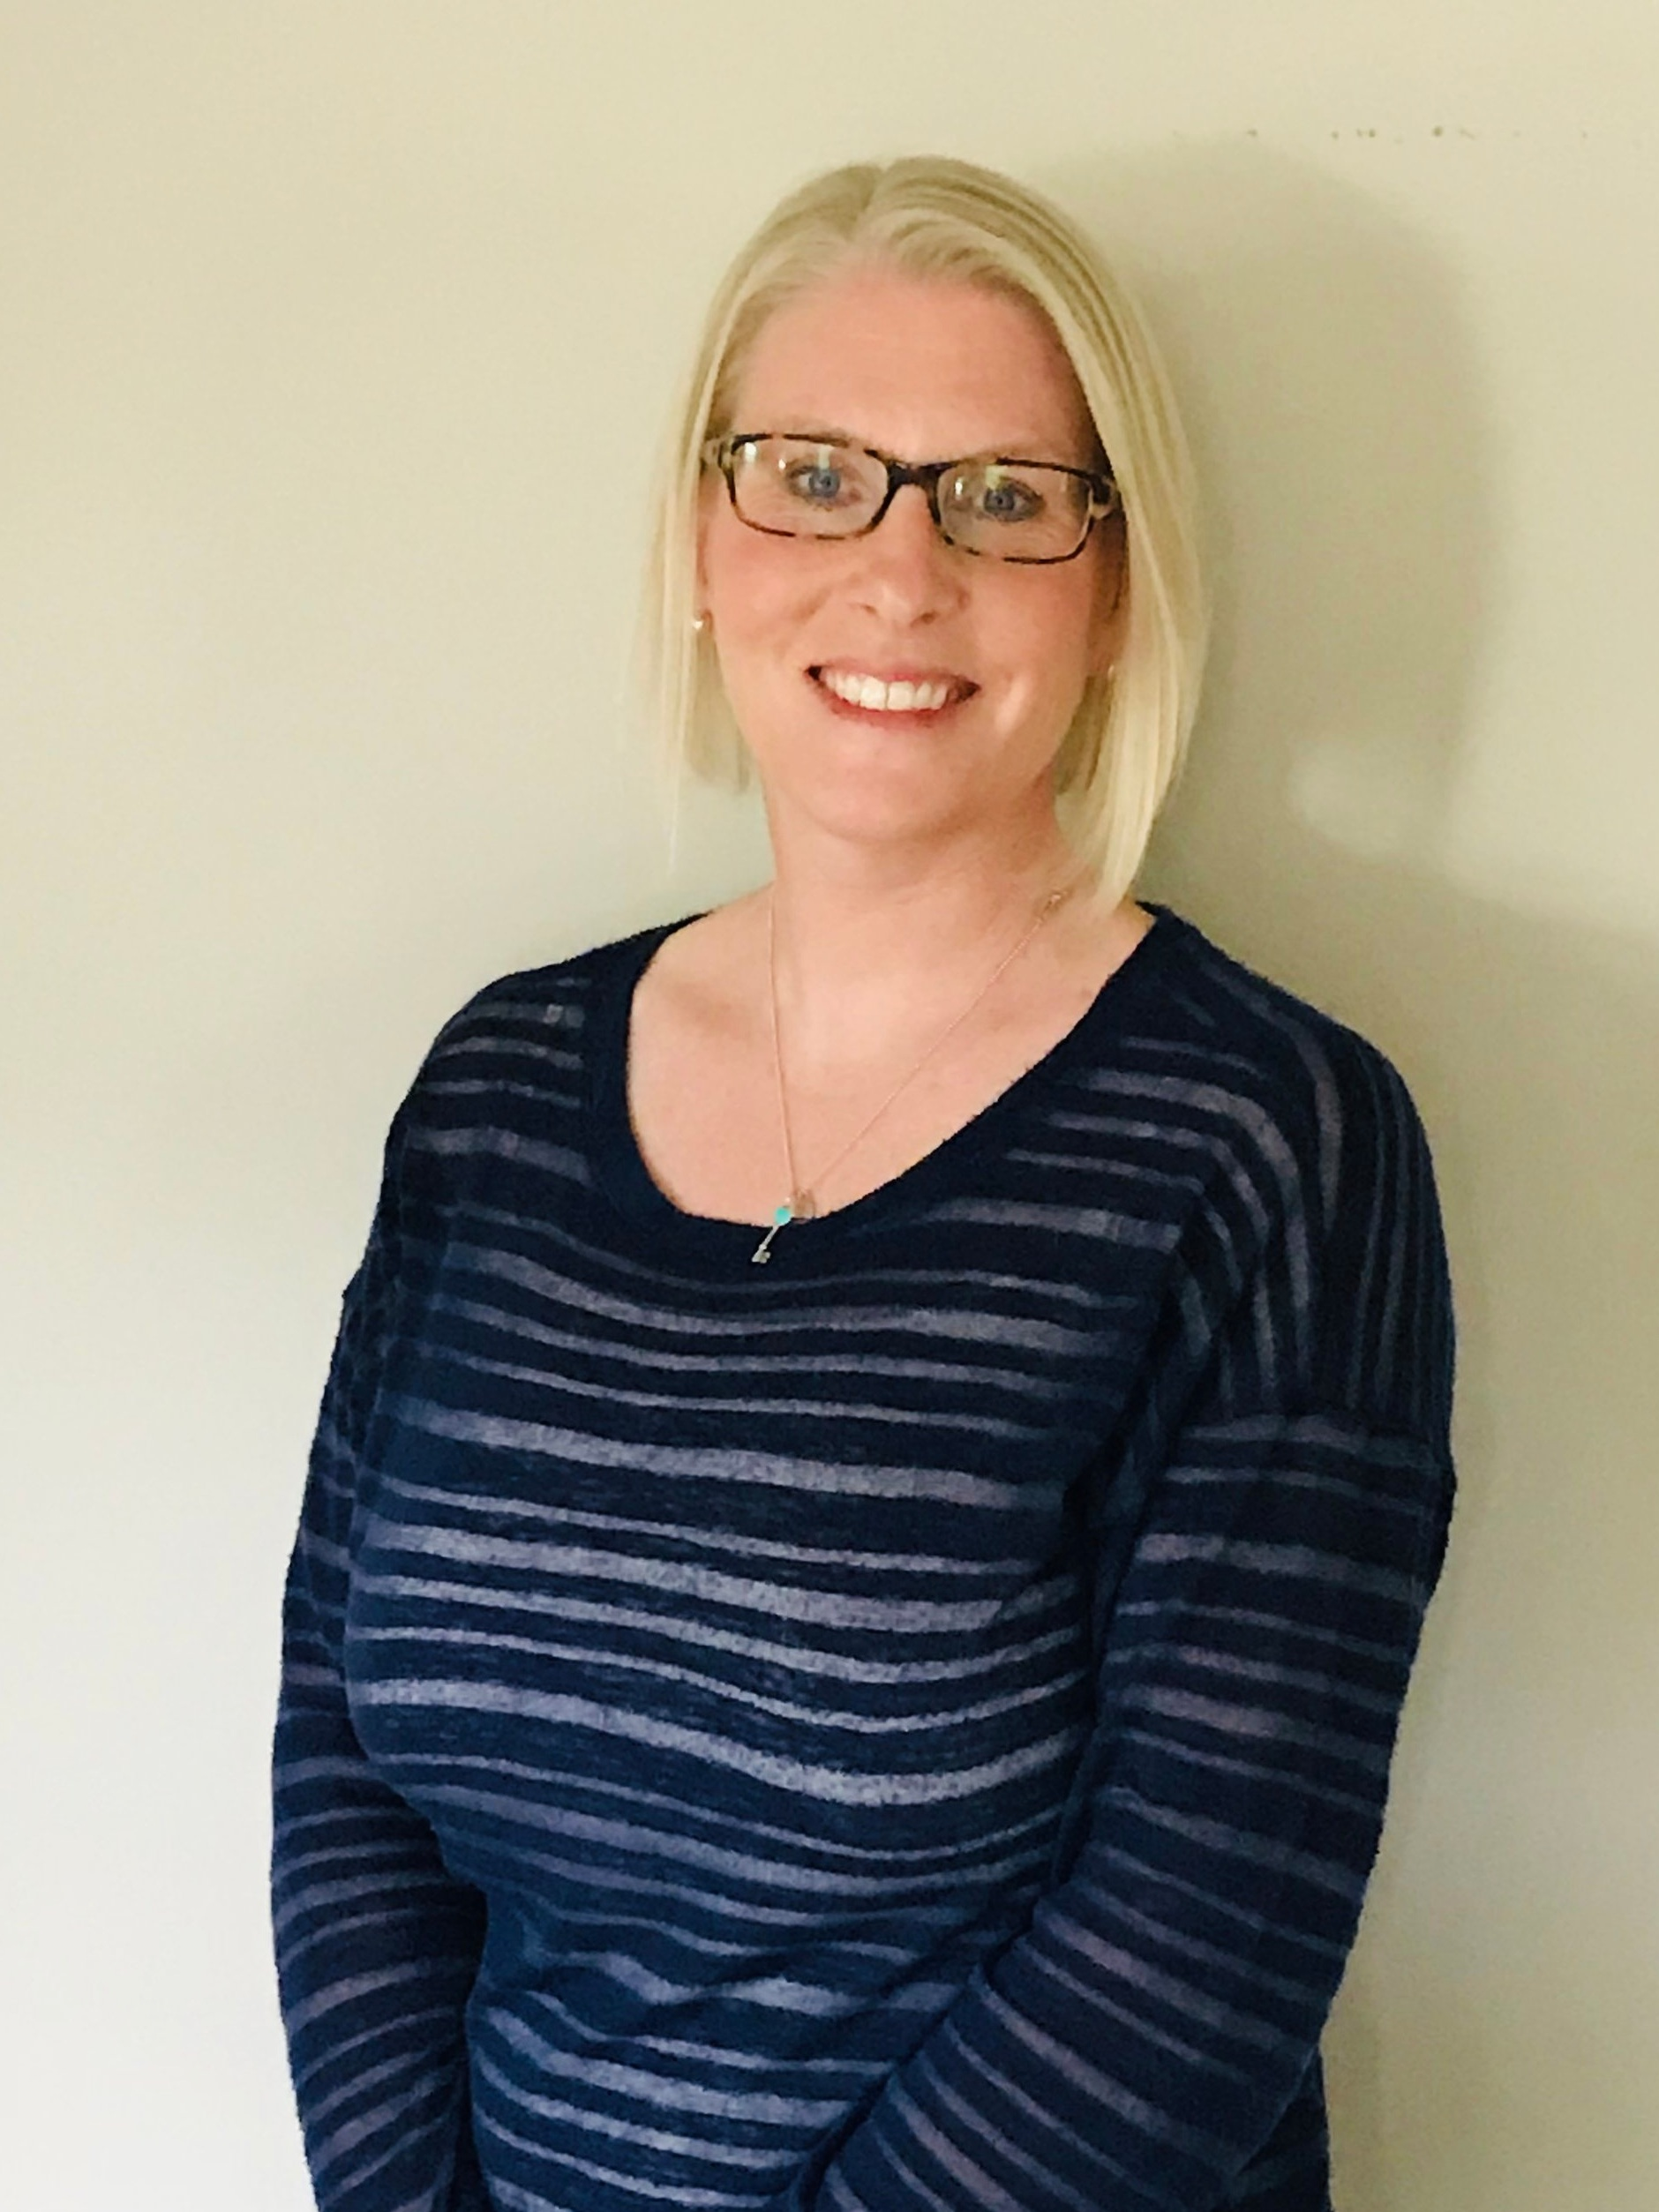 Jo-Anne Belair - I am the Client Care Coordinator for Four Corners Counseling & Well-being and am here to help answer any questions you have about our practice.I look forward to hearing from you soon!